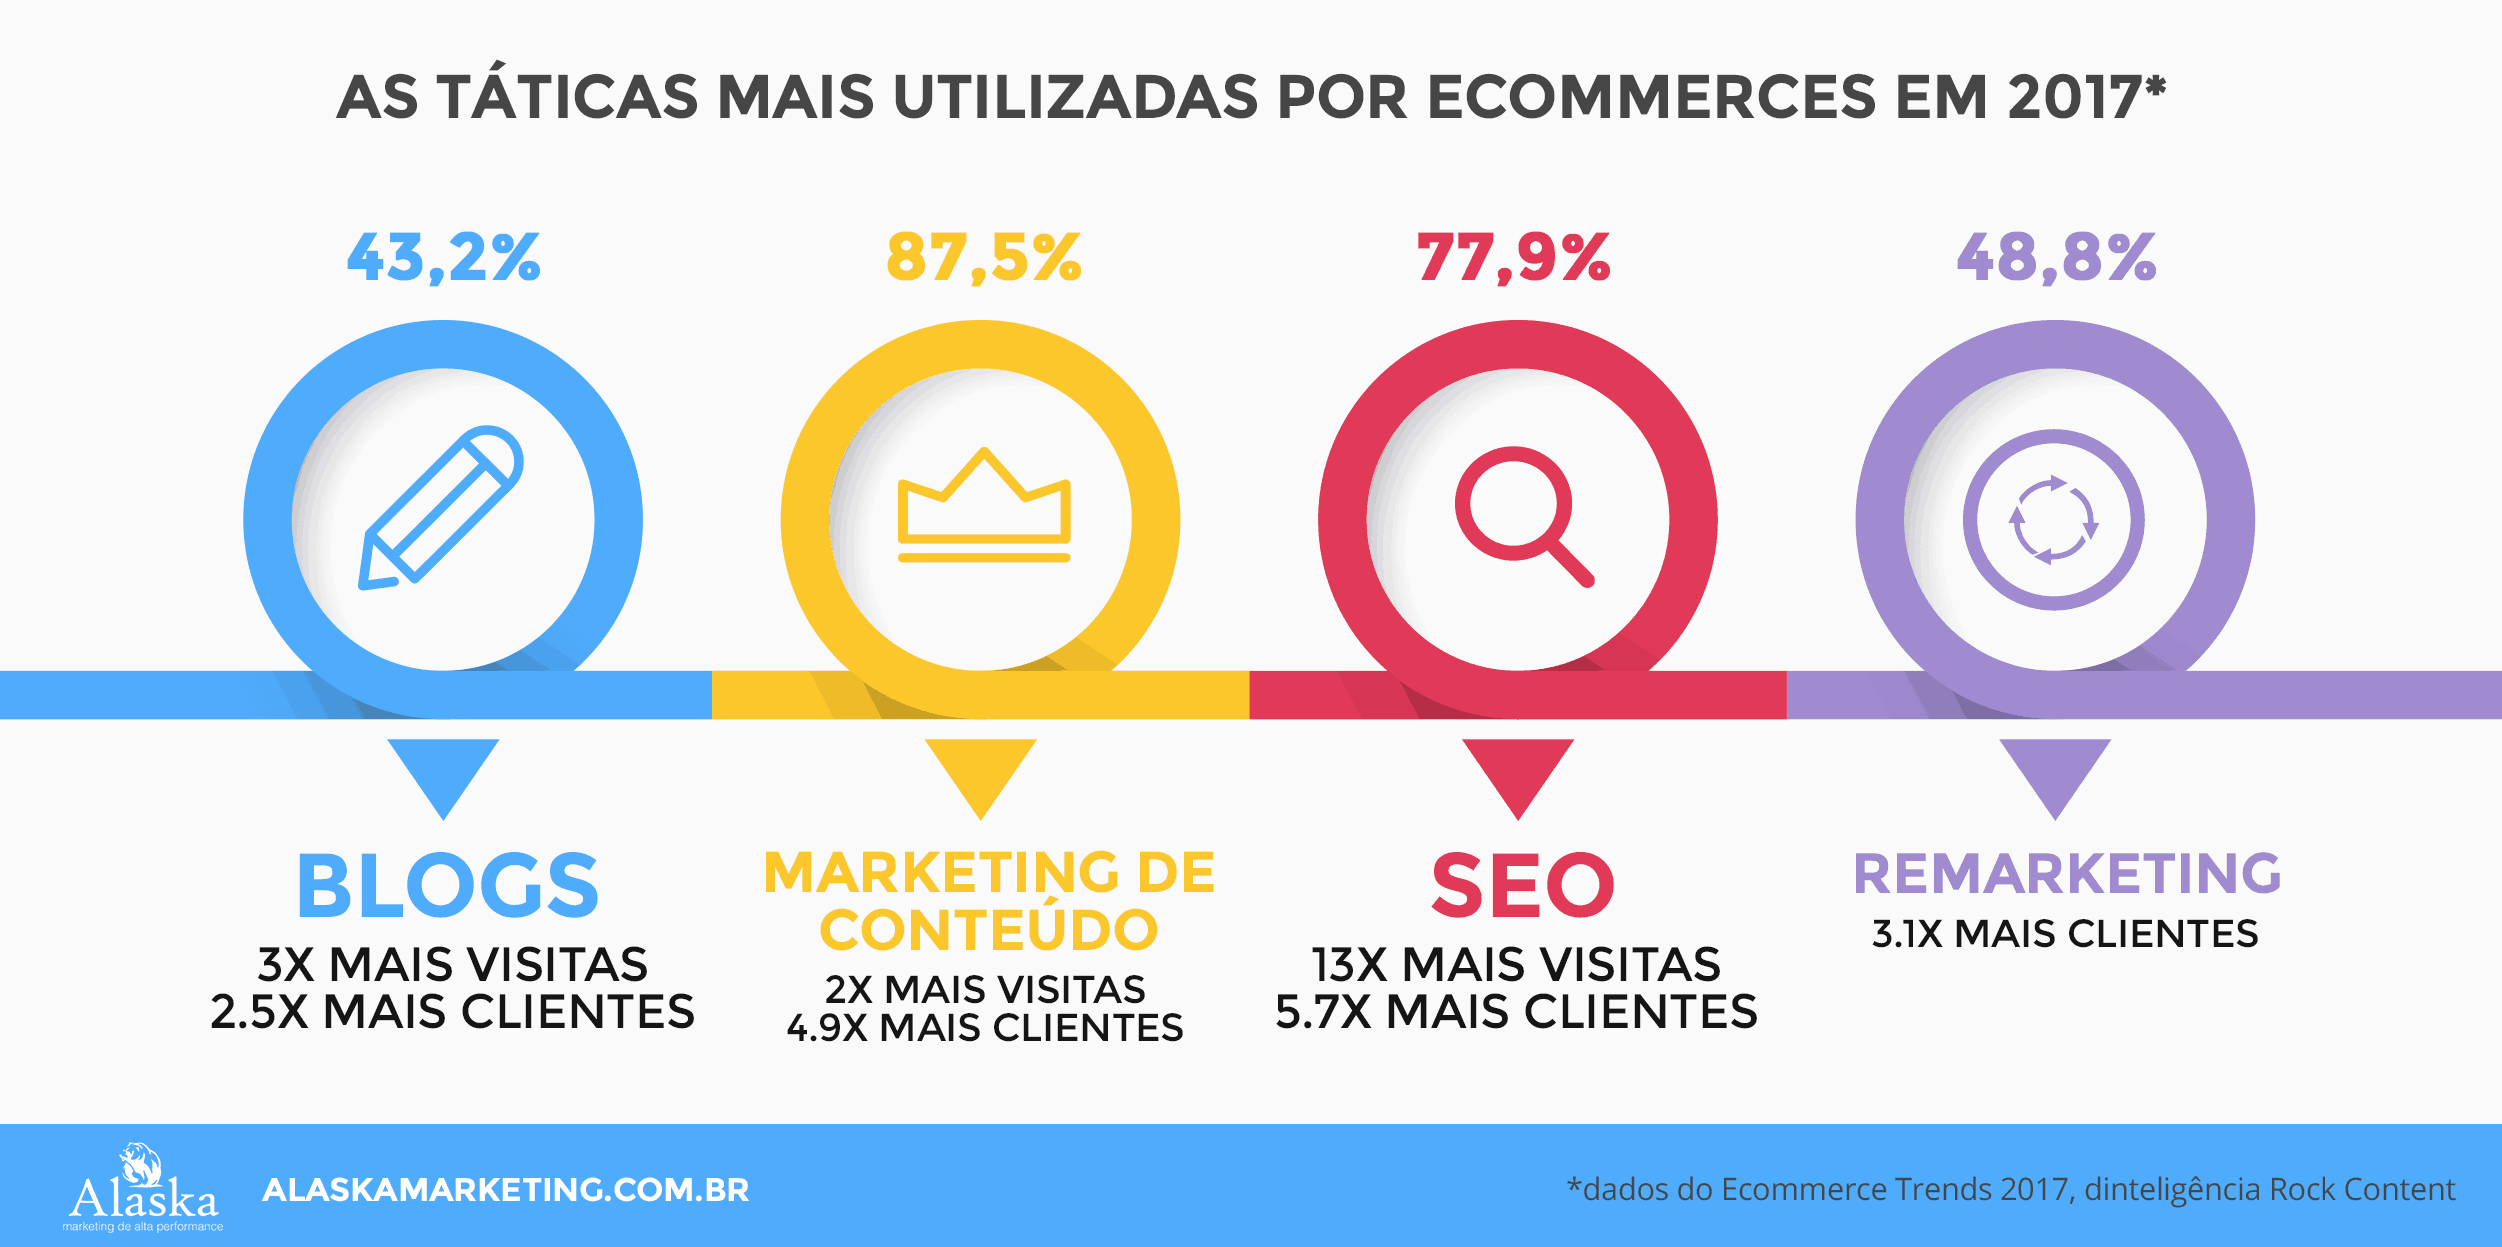 táticas de Marketing para ecommerces